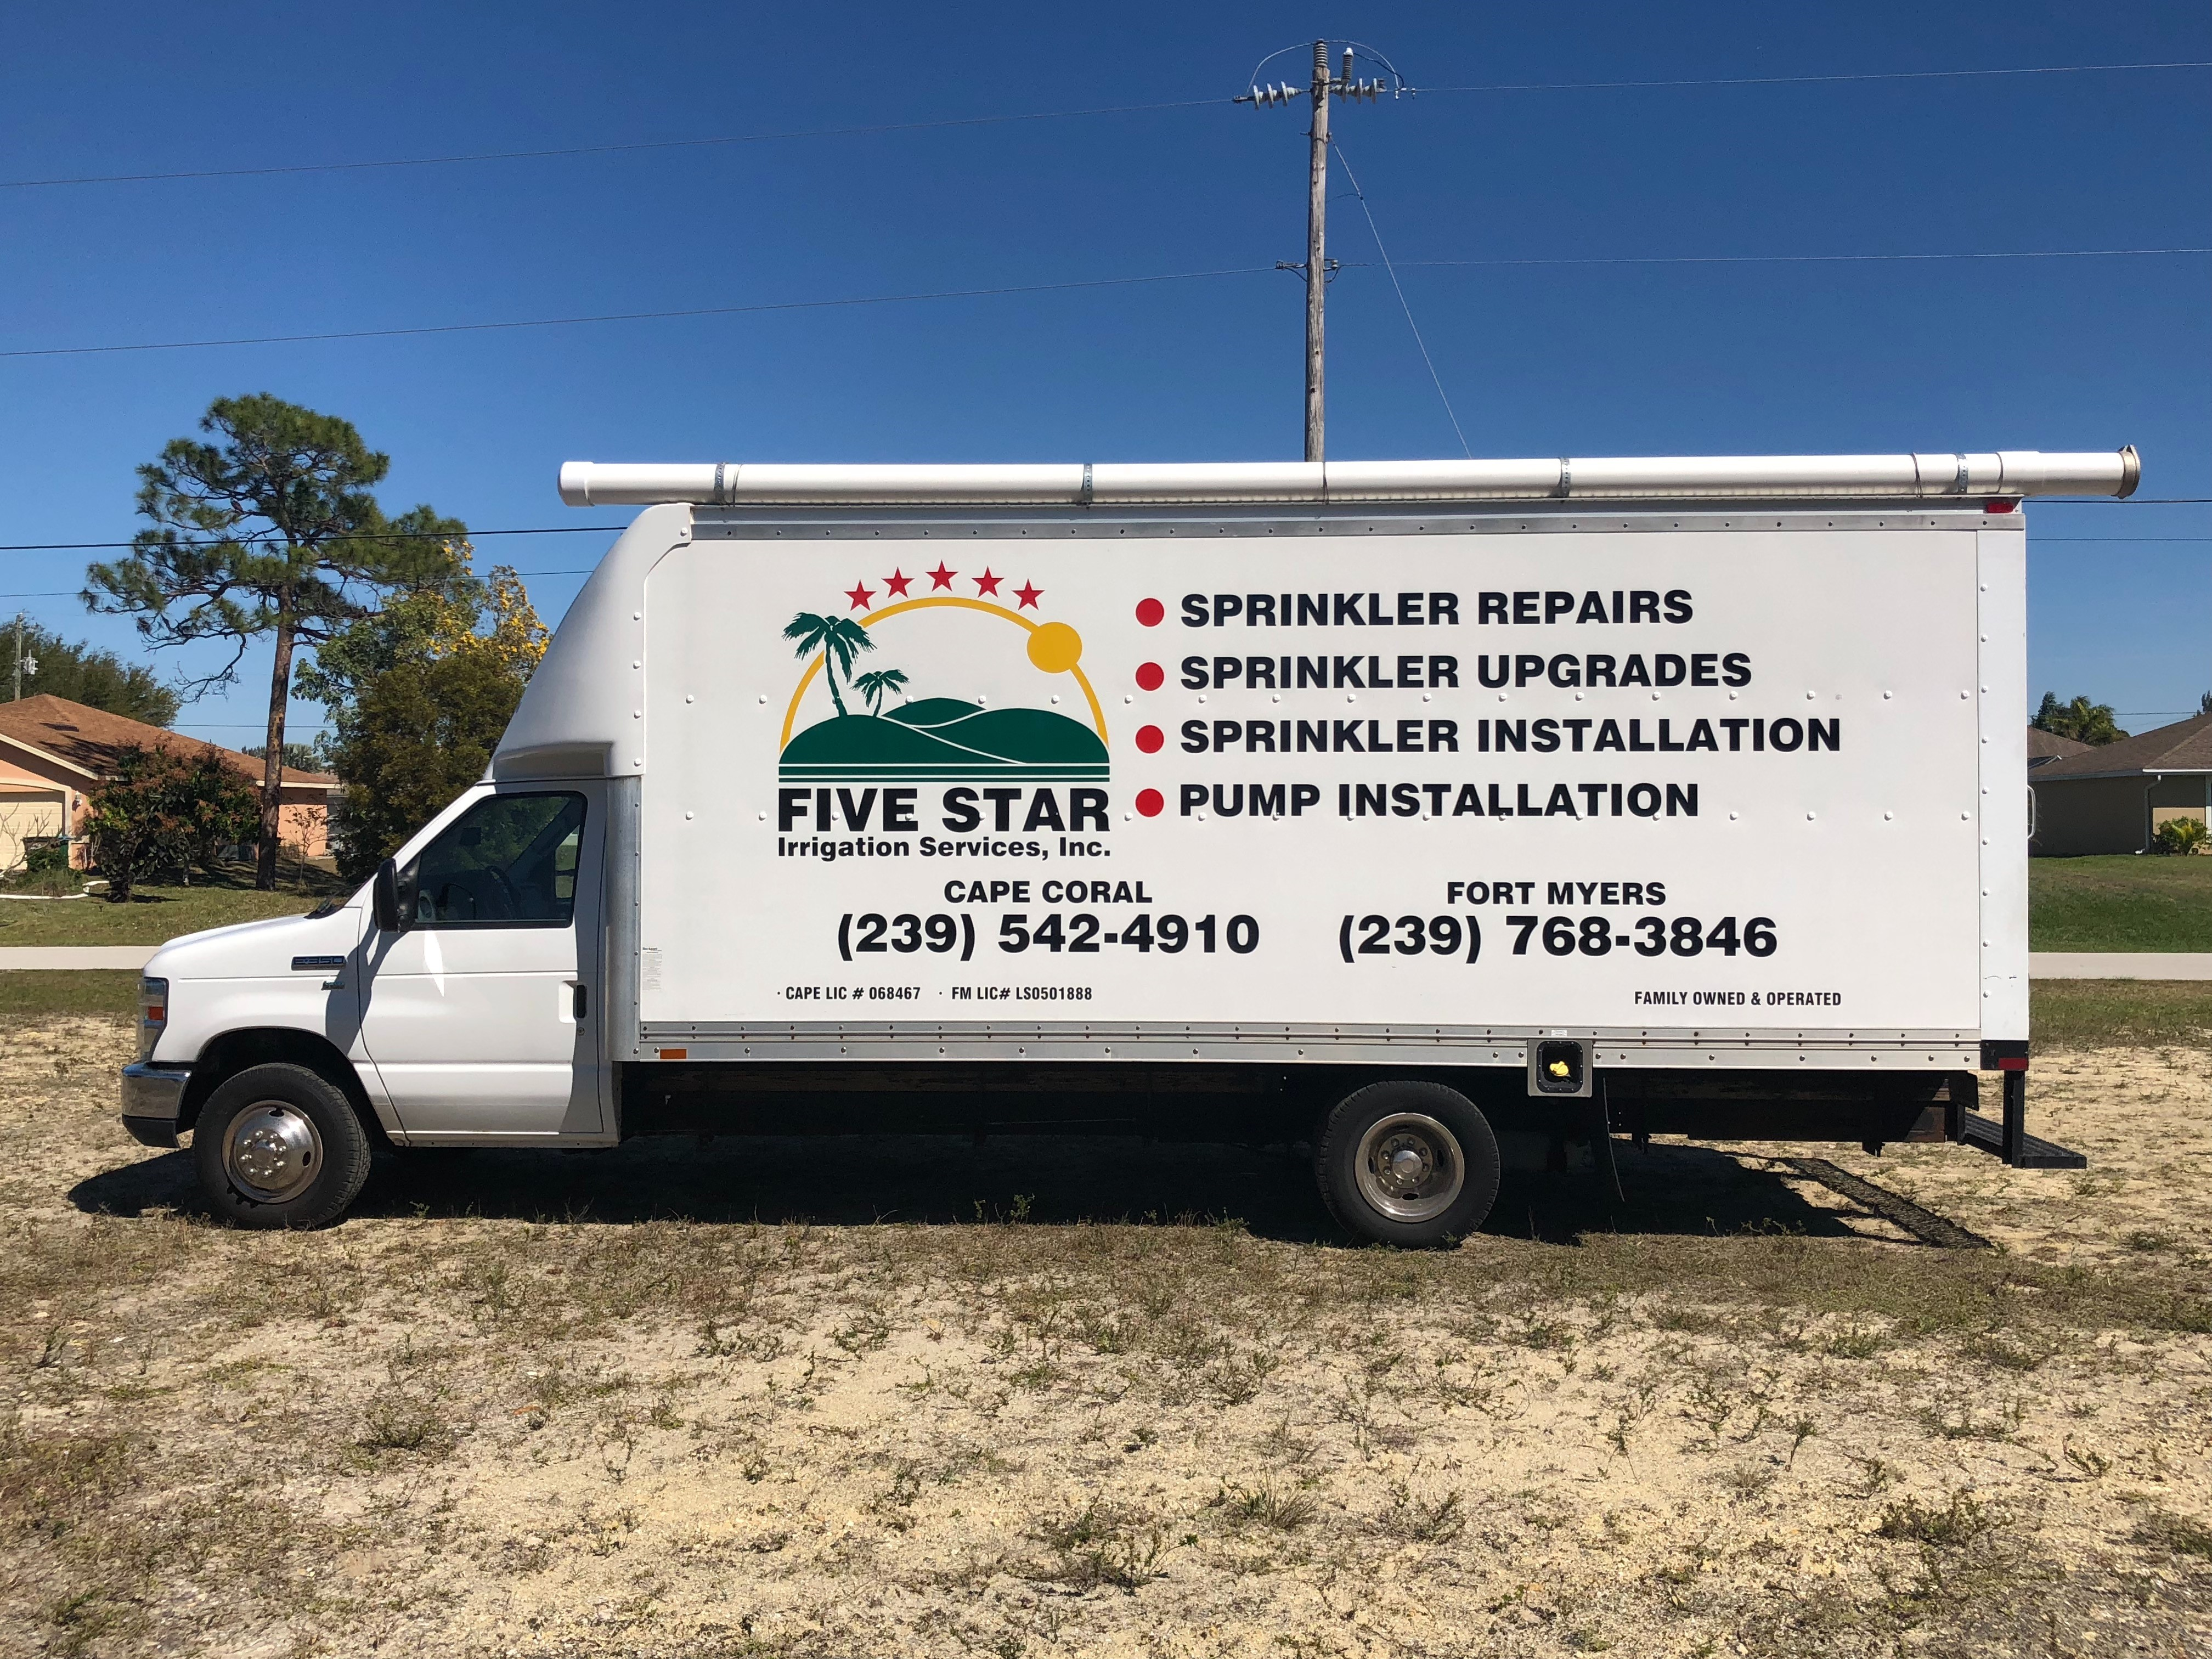 Cape-Coral-Fort-Myers-Sprinkler-Repair-Services